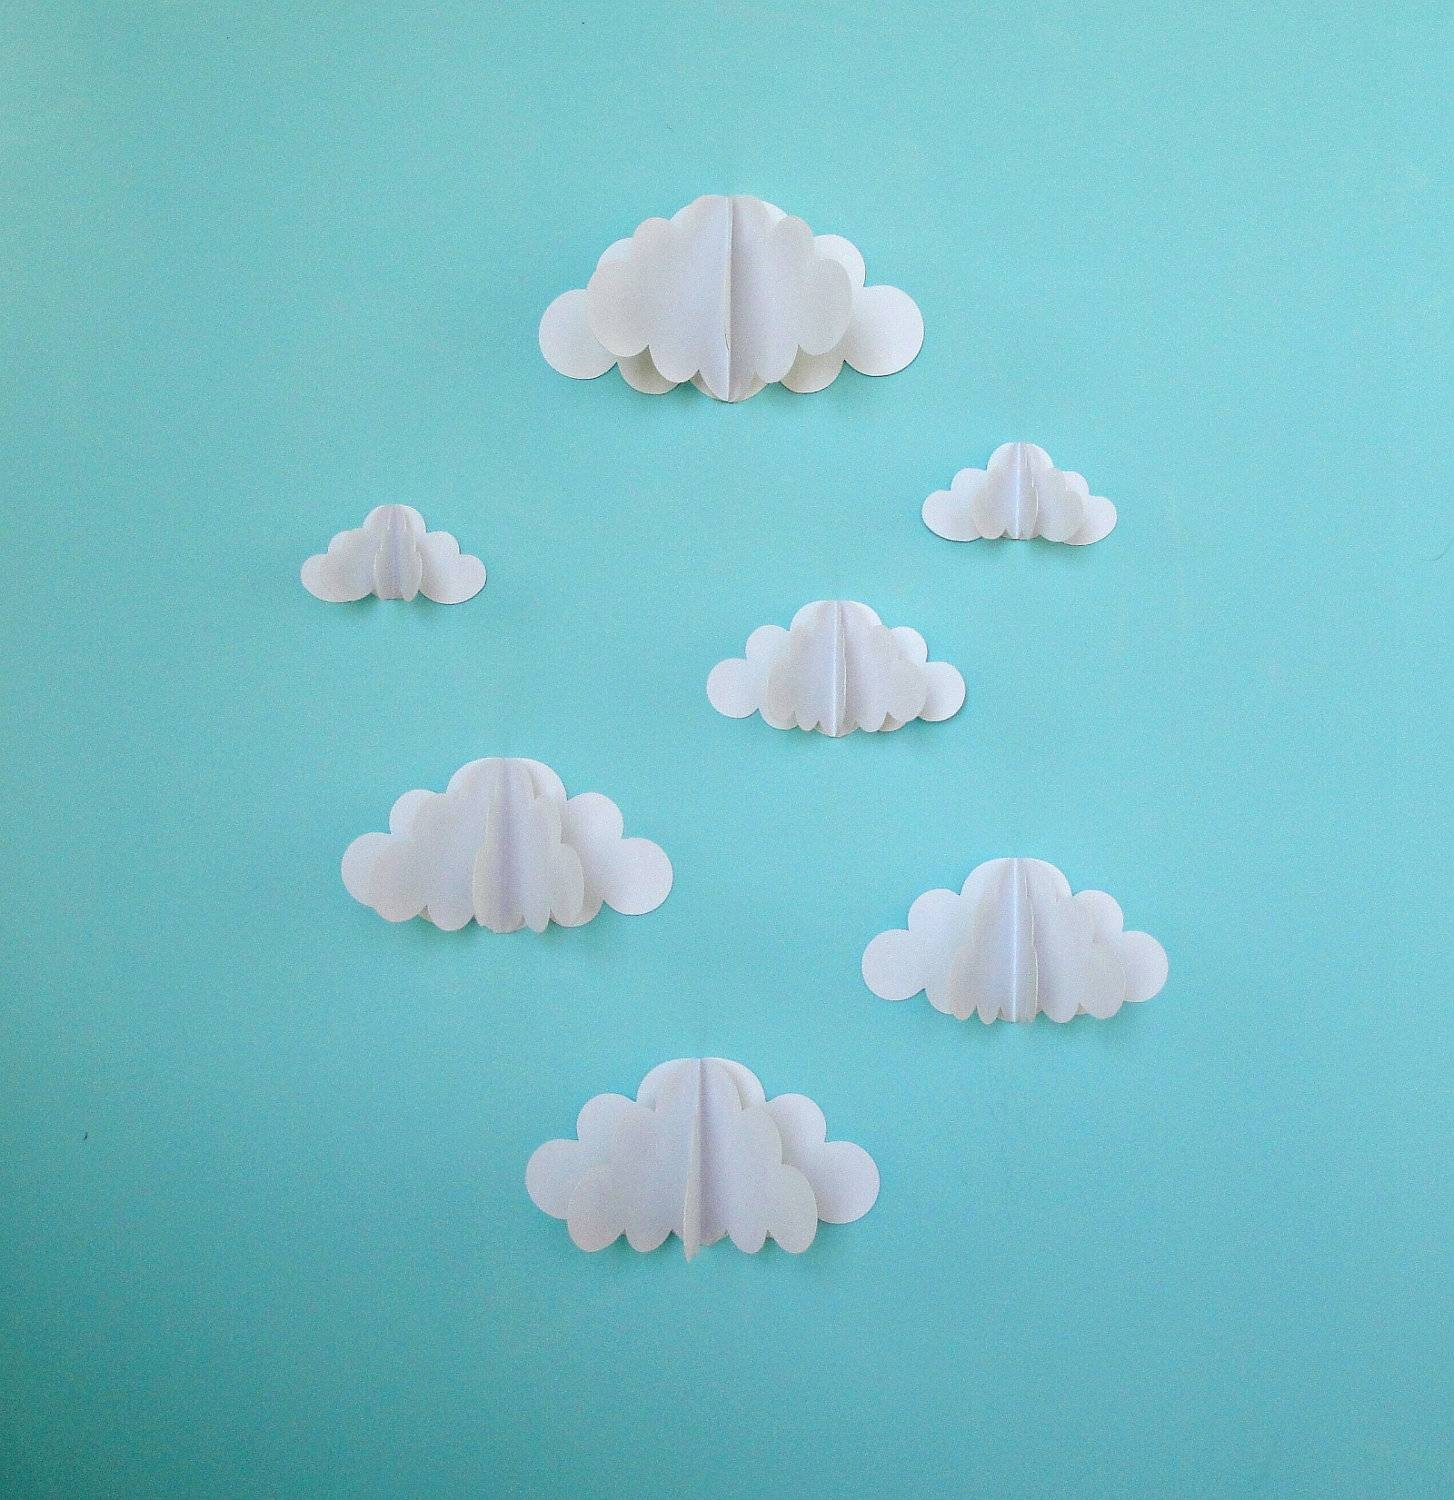 3D Paper Wall Clouds 3D Paper Wall Art/wall Decor/wall For Most Up To Date 3D Paper Wall Art (View 9 of 25)